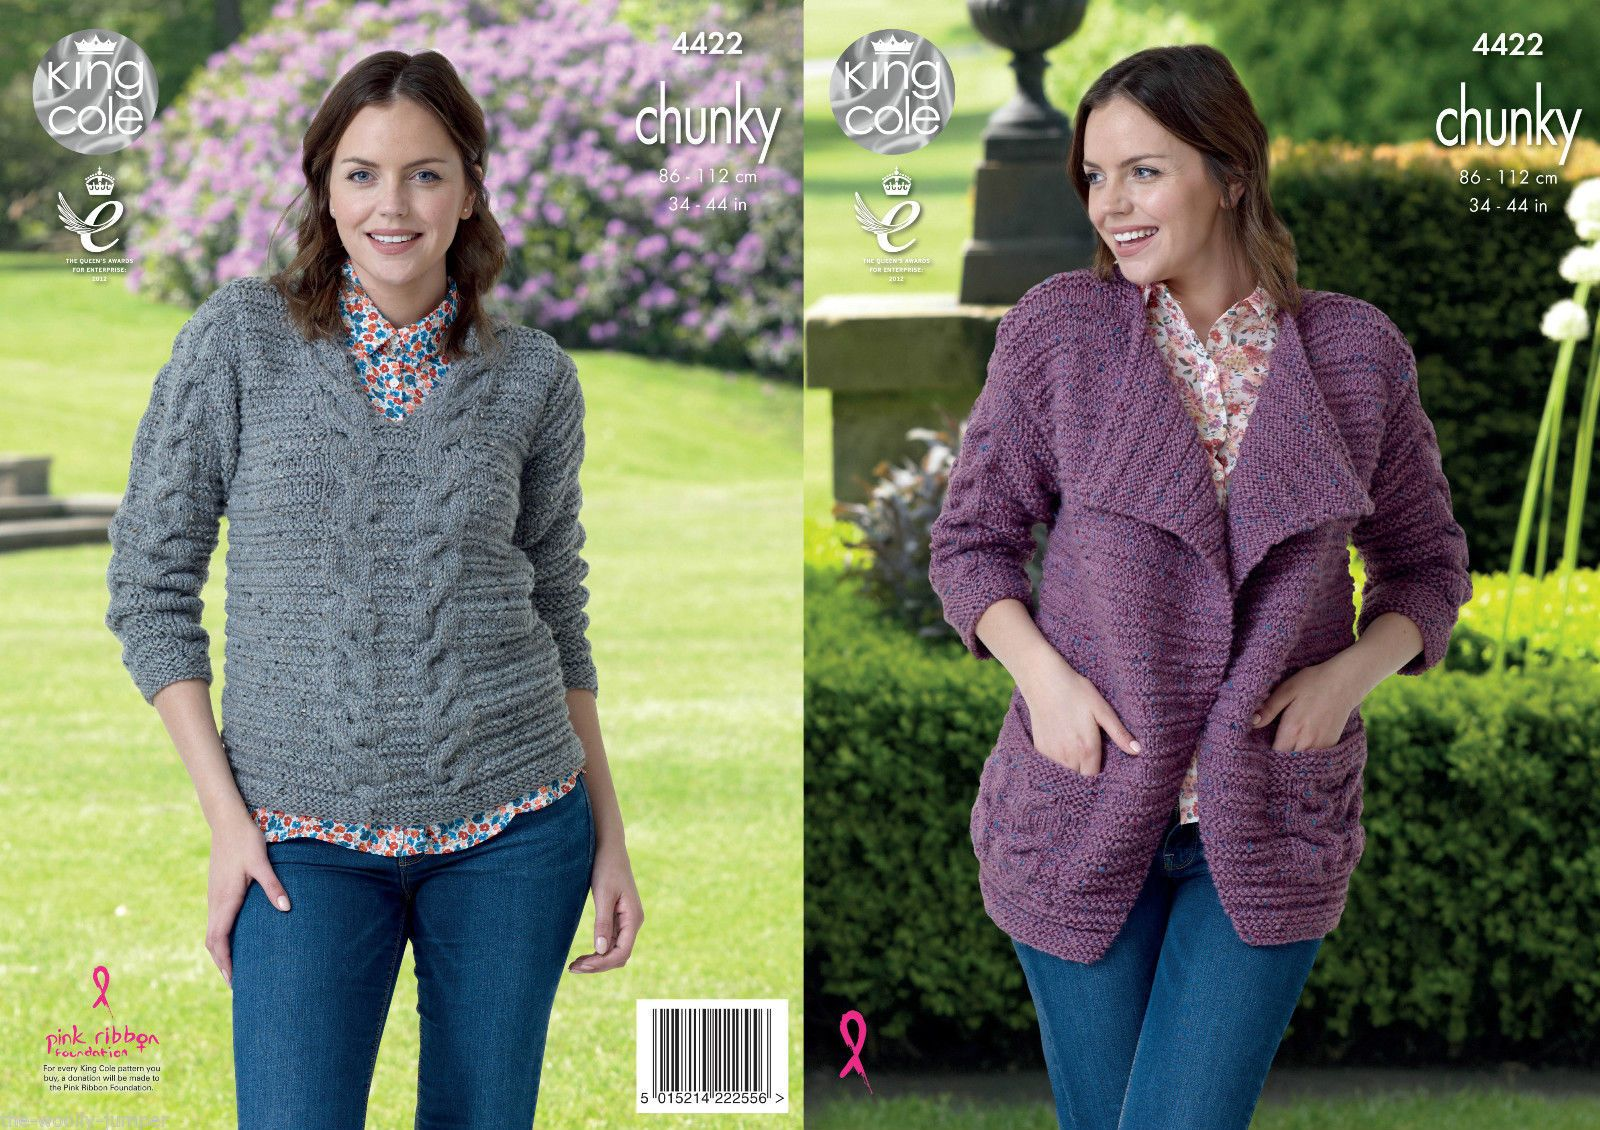 4422 - KING COLE CHUNKY TWEED JACKET & SWEATER KNITTING PATTERN - TO ...